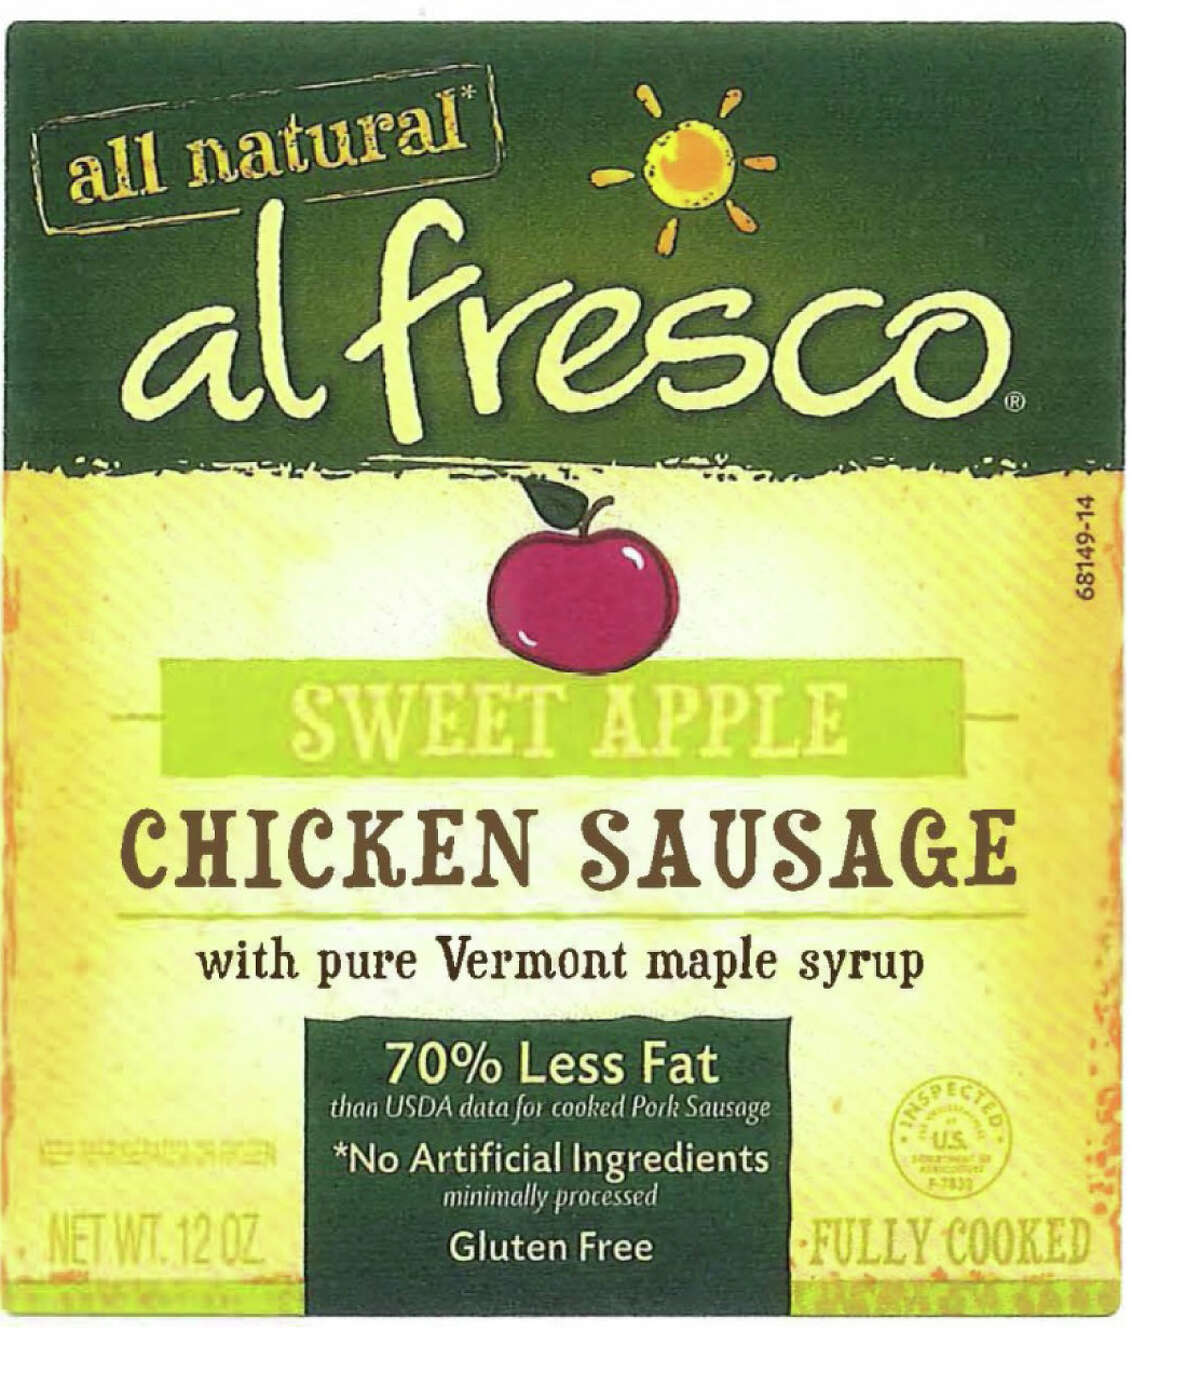 Kayem Foods Inc., a Chelsea, Mass. establishment, is recalling approximately 22,182 pounds of chicken sausage products due to misbranding, according to the U.S. Department of Agriculture's Food Safety and Inspection Service. Recall 006-2016 Labels